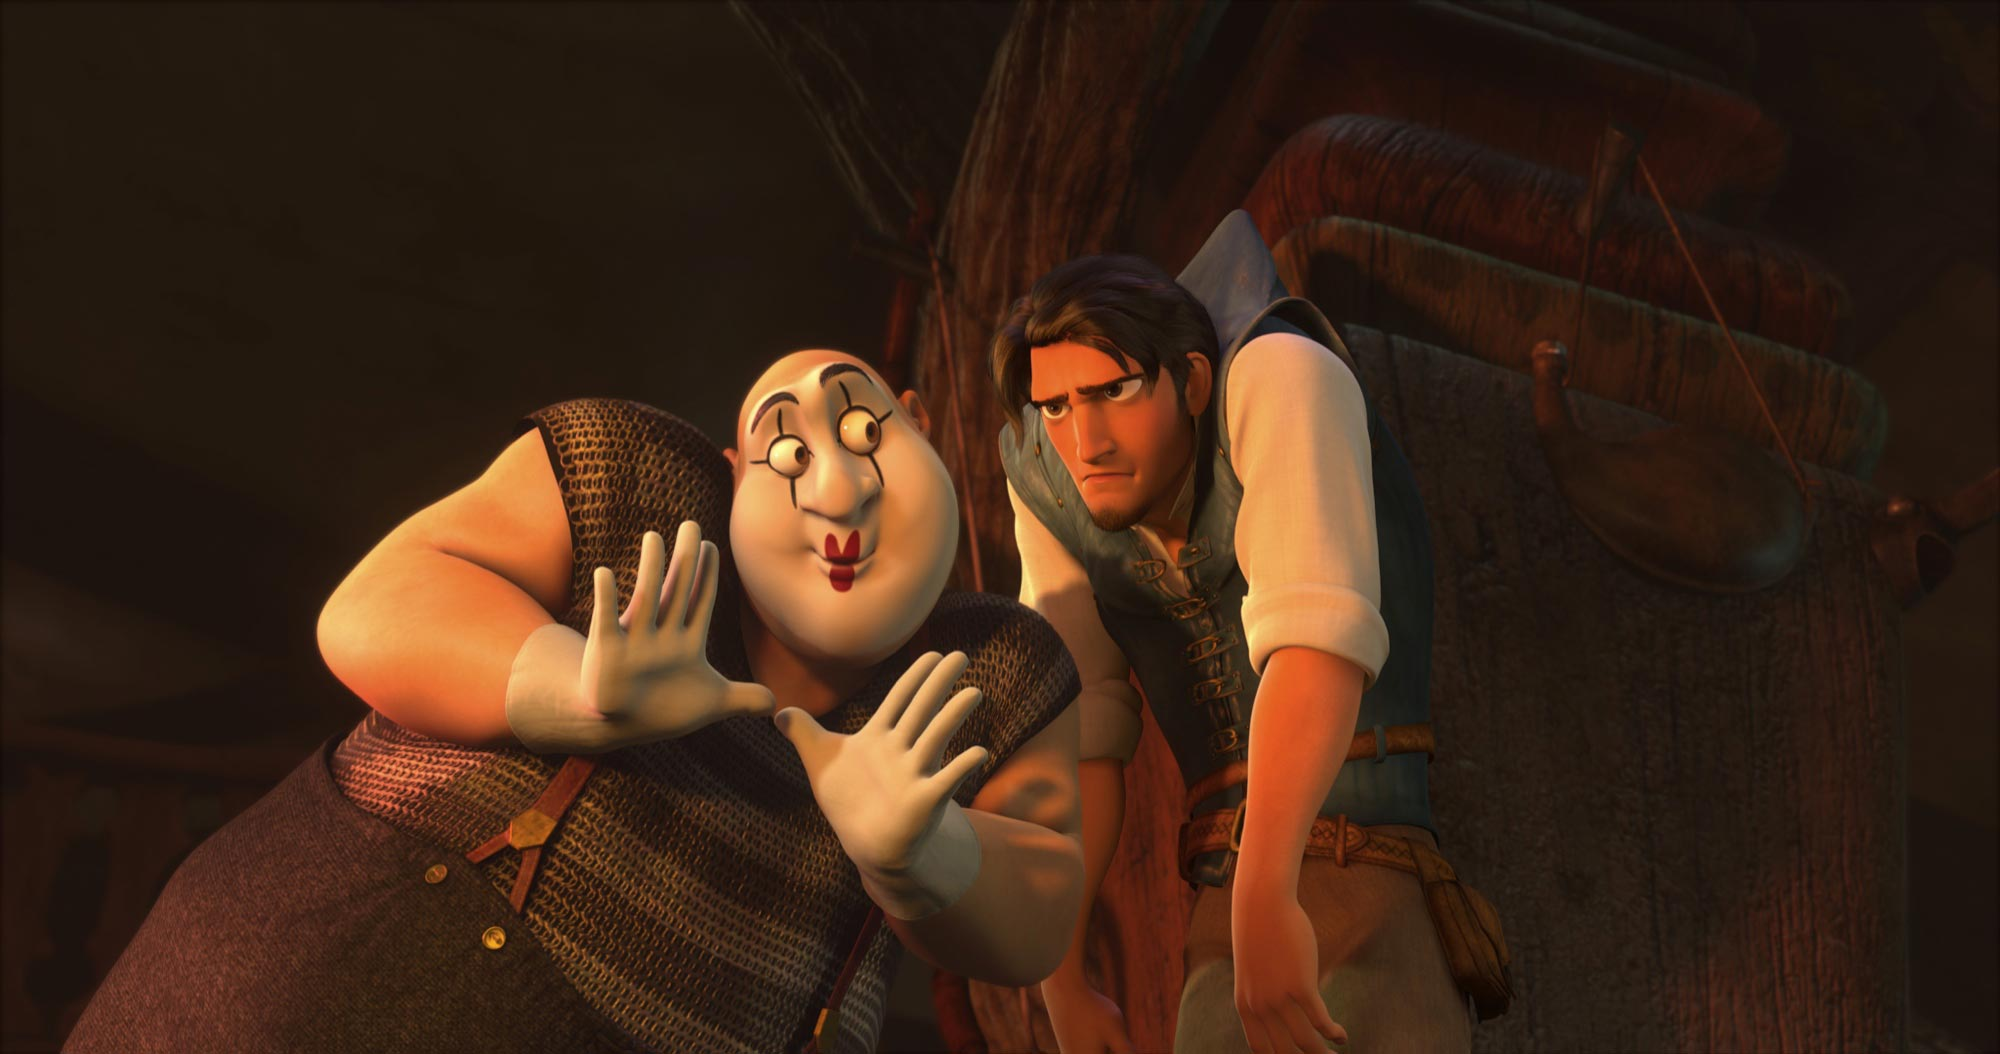 New Tangled Images TV Spot And Featurette